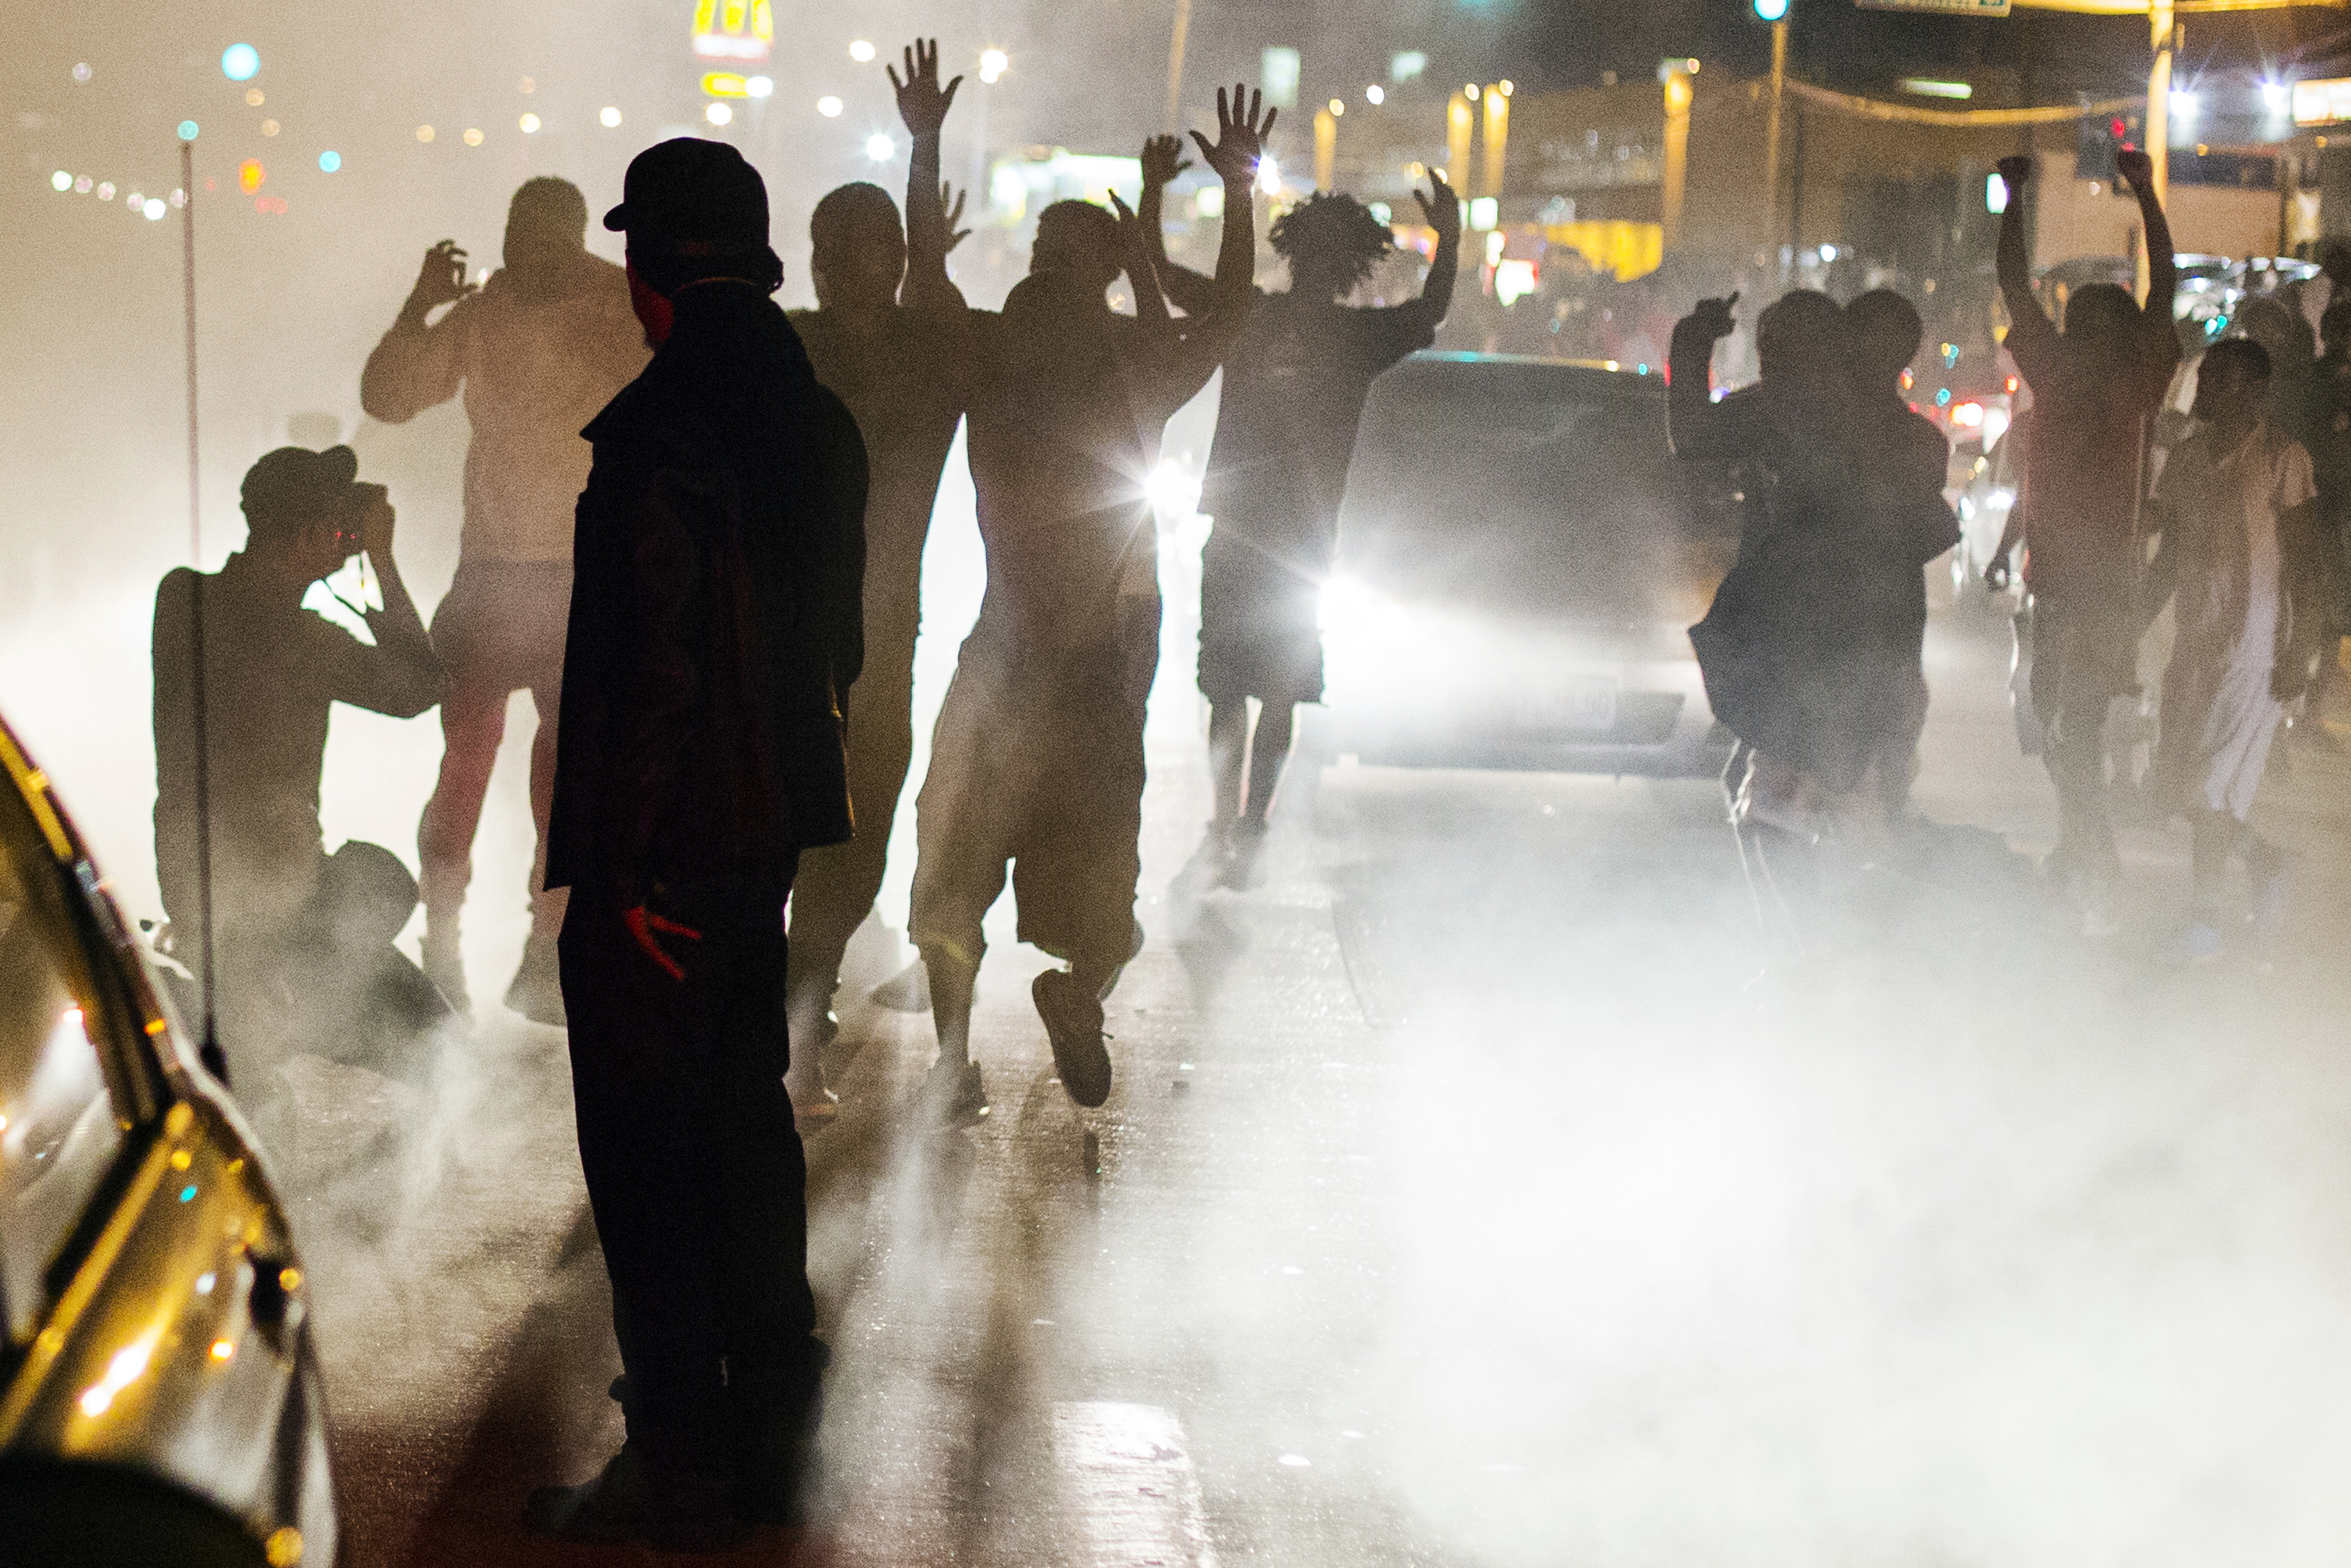 Protesters chant during a peaceful demonstration as communities continue to react to the shooting of Michael Brown in Ferguson, Missouri